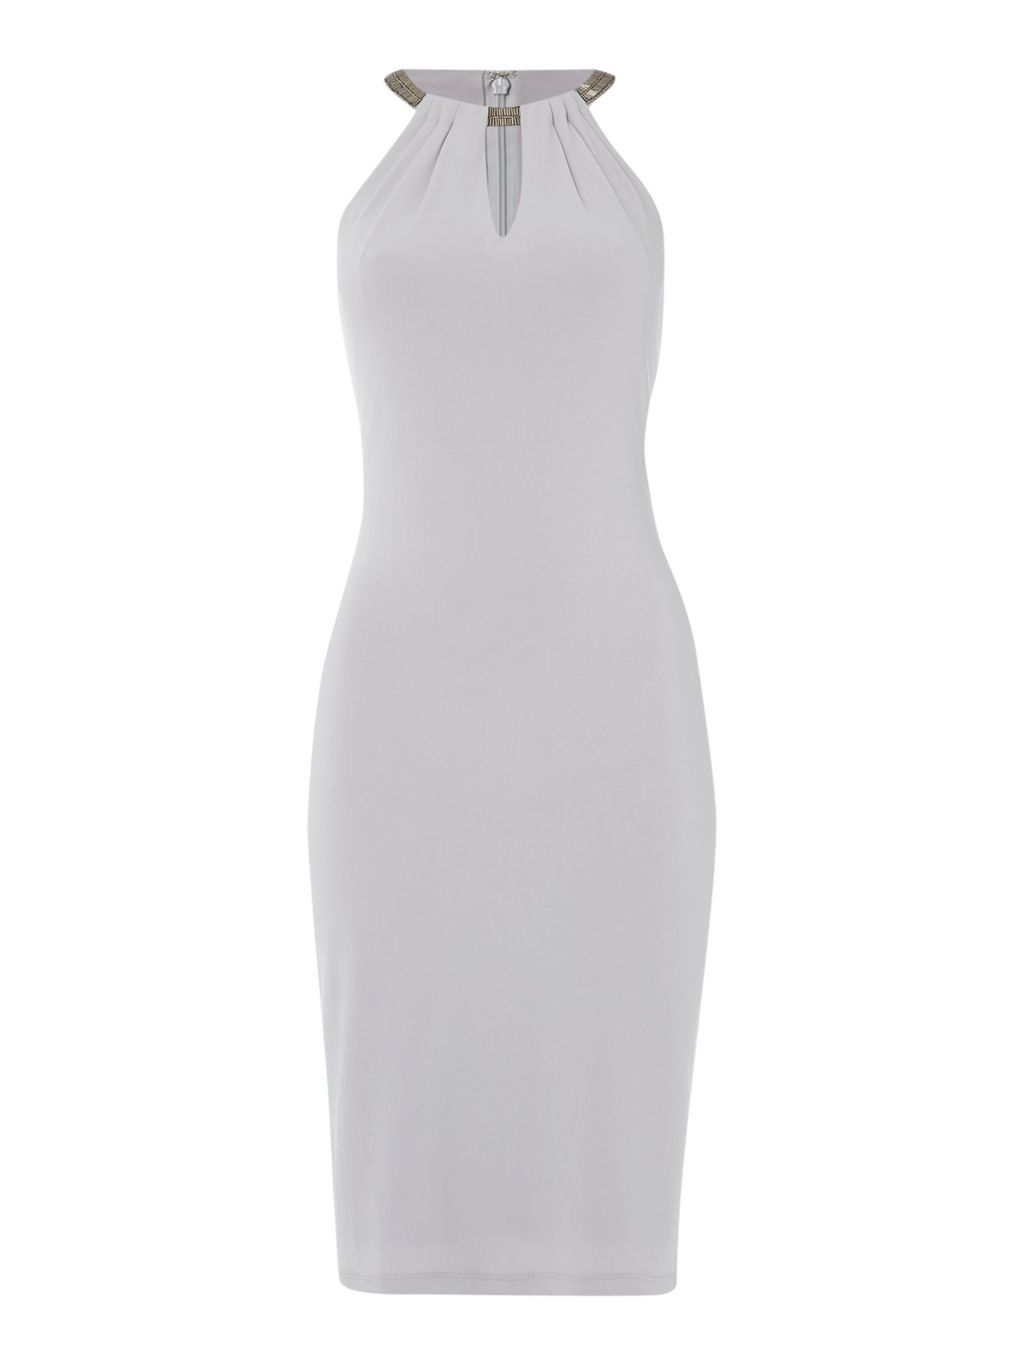 Jersey Lace Halter Gown, Silver - fit: tight; pattern: plain; sleeve style: sleeveless; style: bodycon; predominant colour: silver; occasions: evening; length: on the knee; neckline: peep hole neckline; fibres: polyester/polyamide - stretch; sleeve length: sleeveless; texture group: jersey - clingy; pattern type: fabric; season: s/s 2016; wardrobe: event